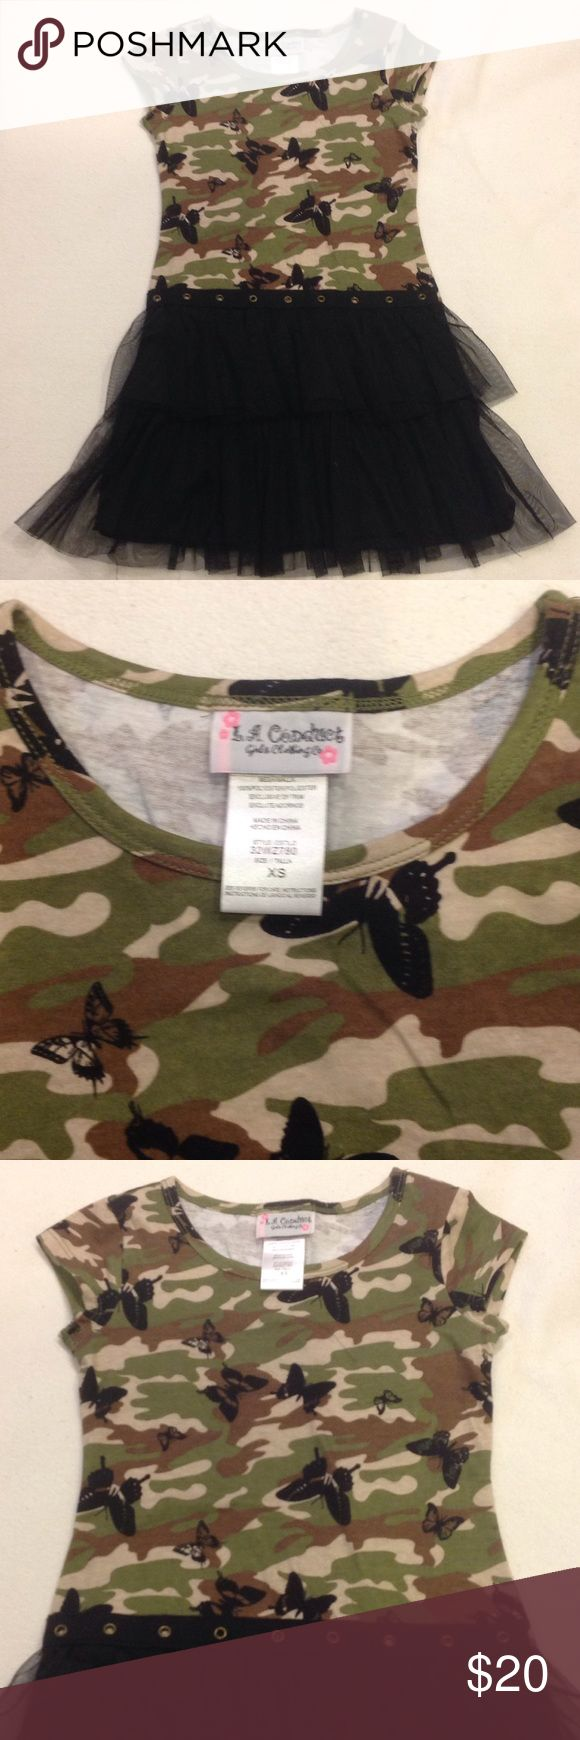 Girls camouflage dress camouflage top and tulle bottom great for every occasion L.A. conduct Dresses Casual